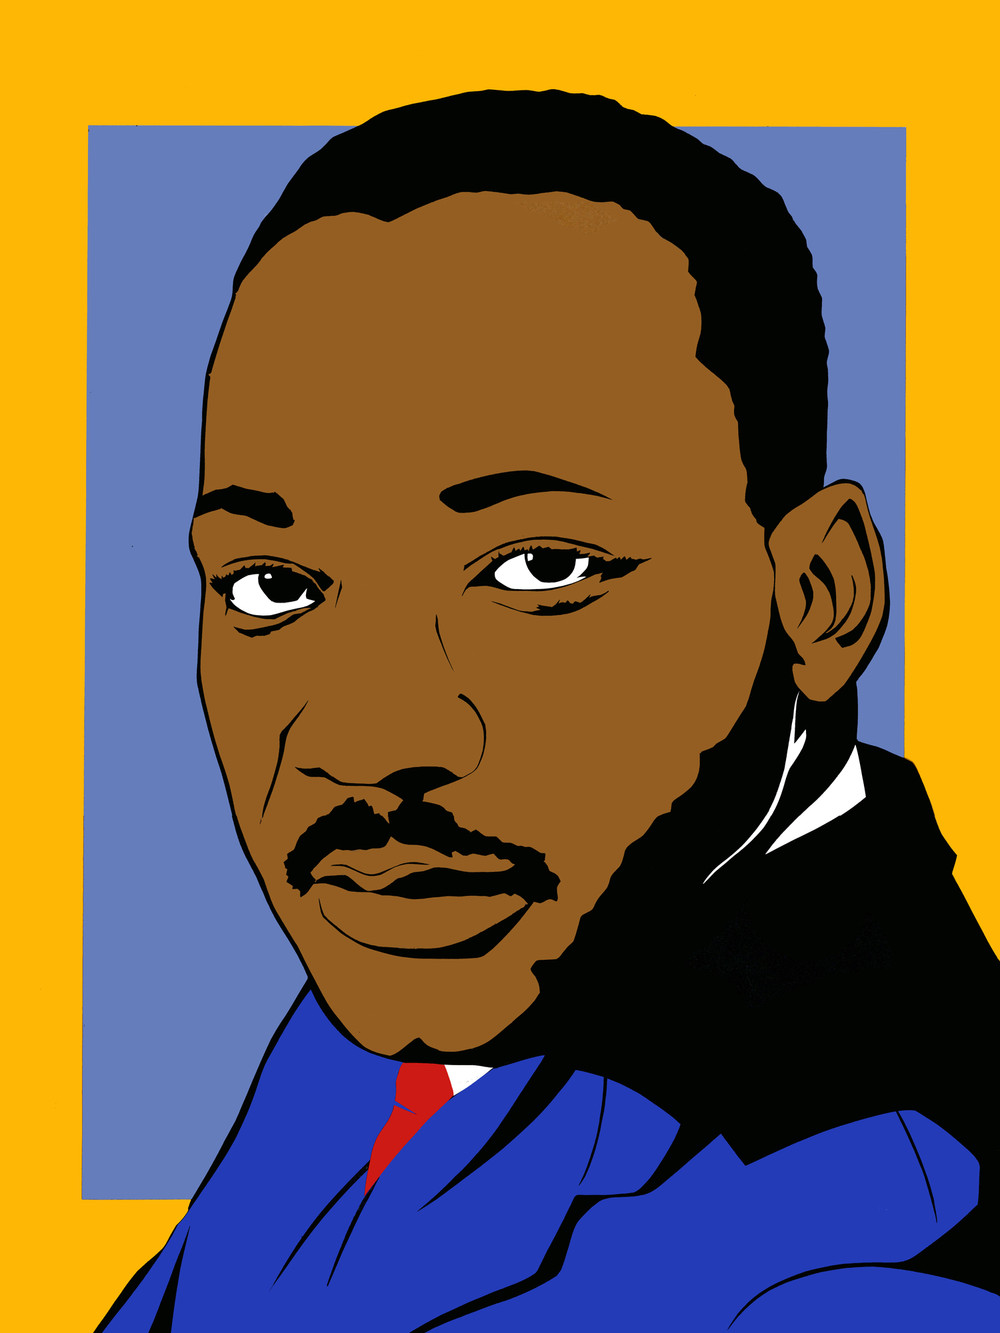 Martin Luther King Jr. (I Have A Dream)